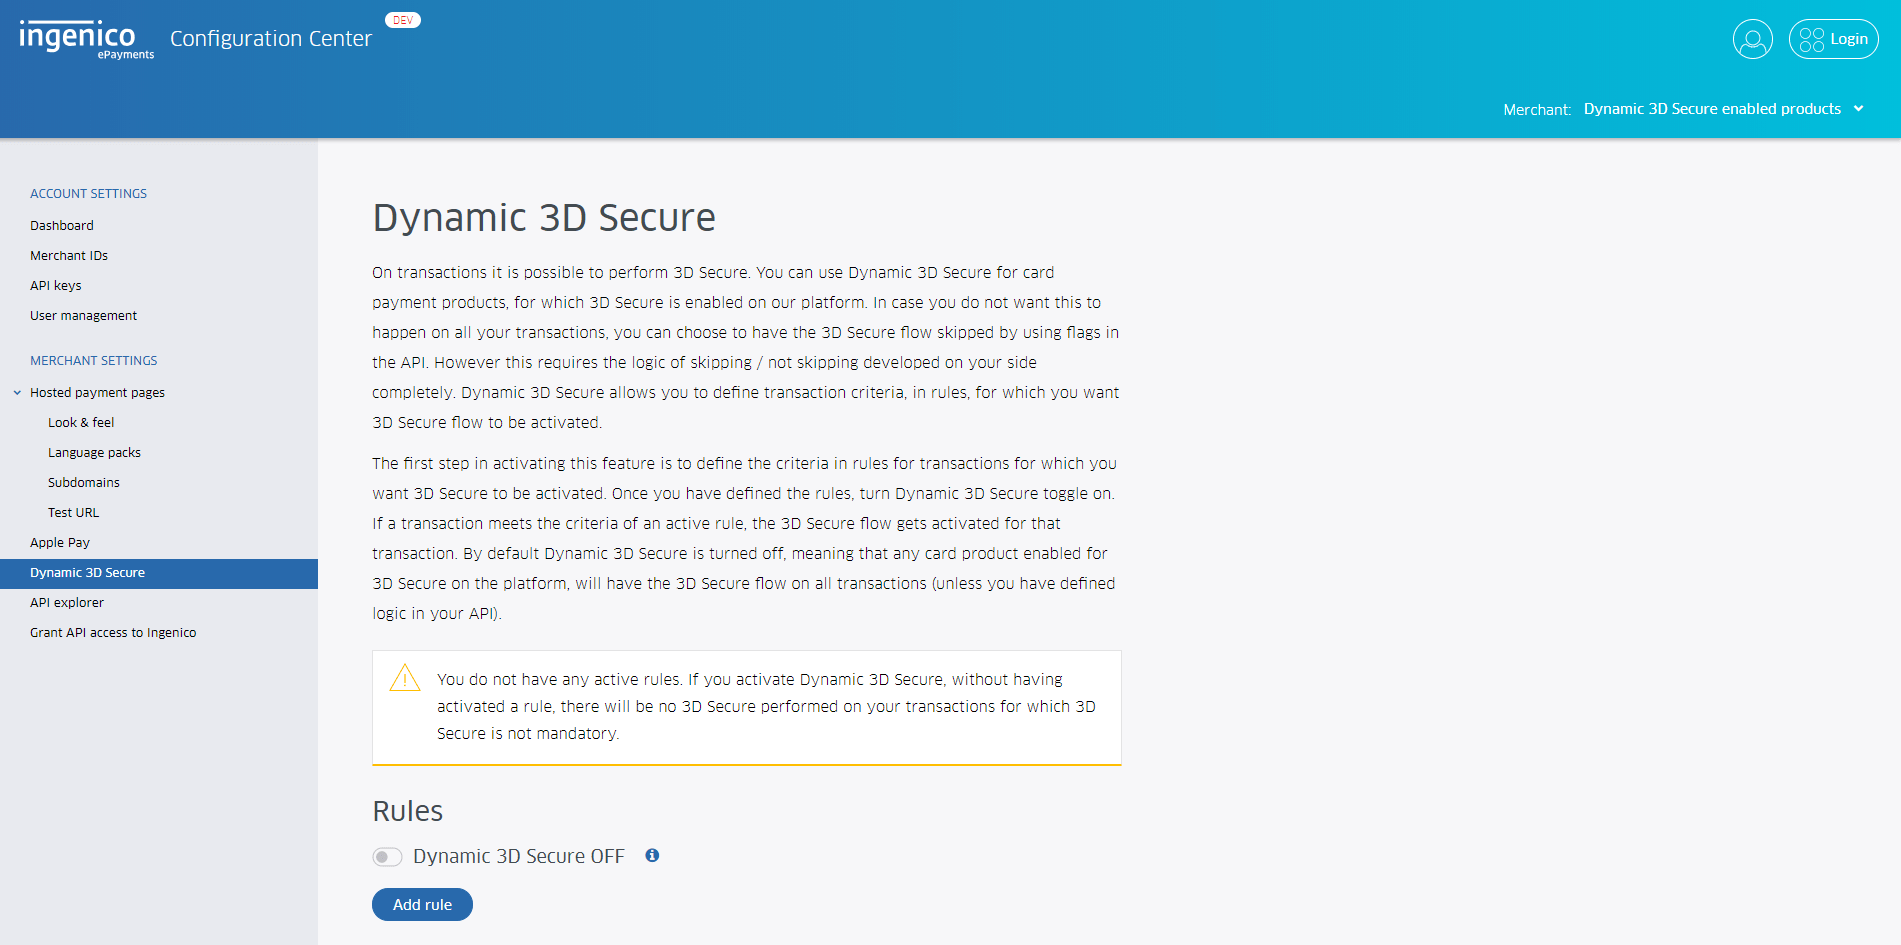 dynamic 3d secure - step 2 - open menu item